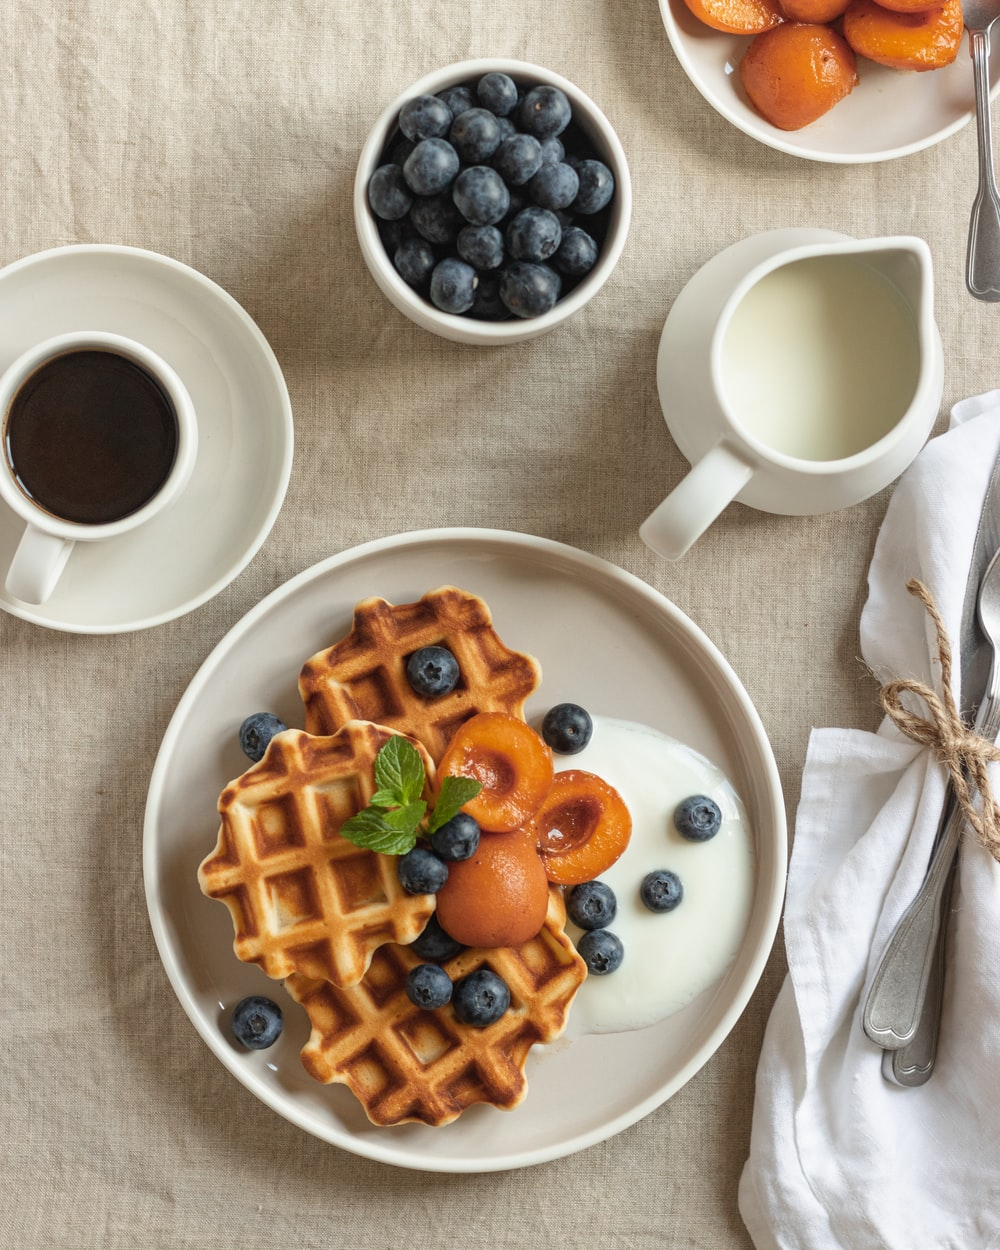 waffle with sliced strawberries and blueberries on white ceramic plate